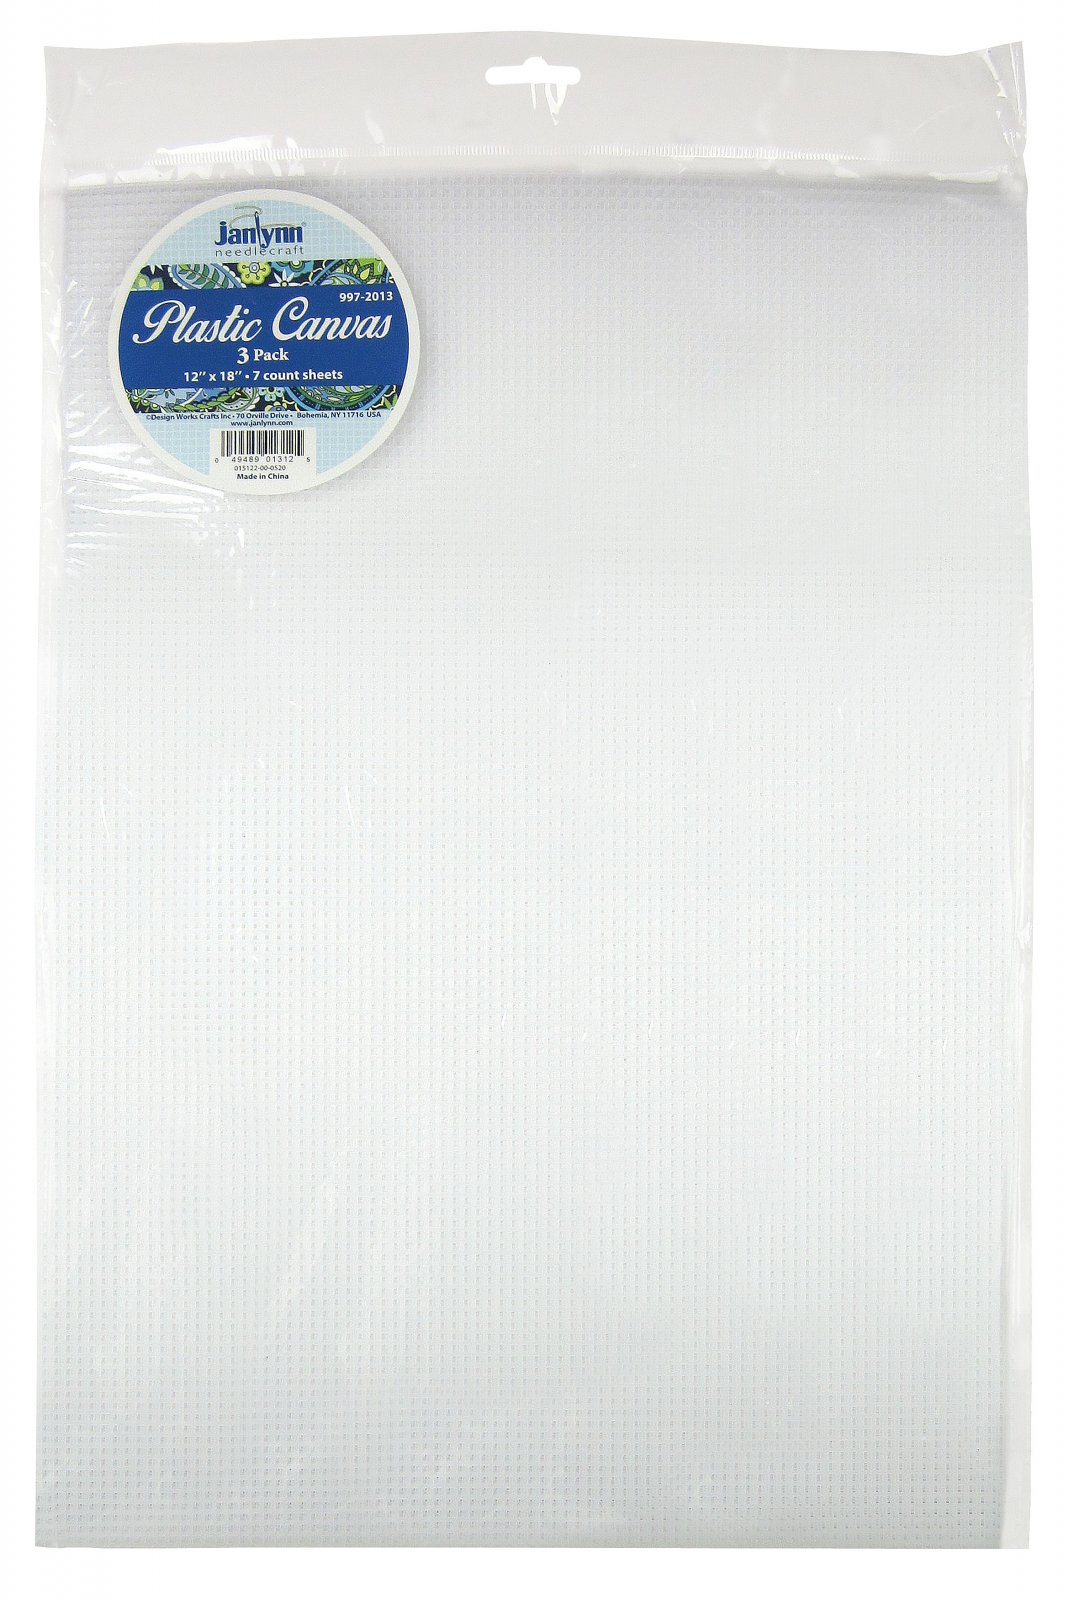 # 997-2013 - 7 Count Plastic Canvas Sheets - CLEAR/PACK OF 3